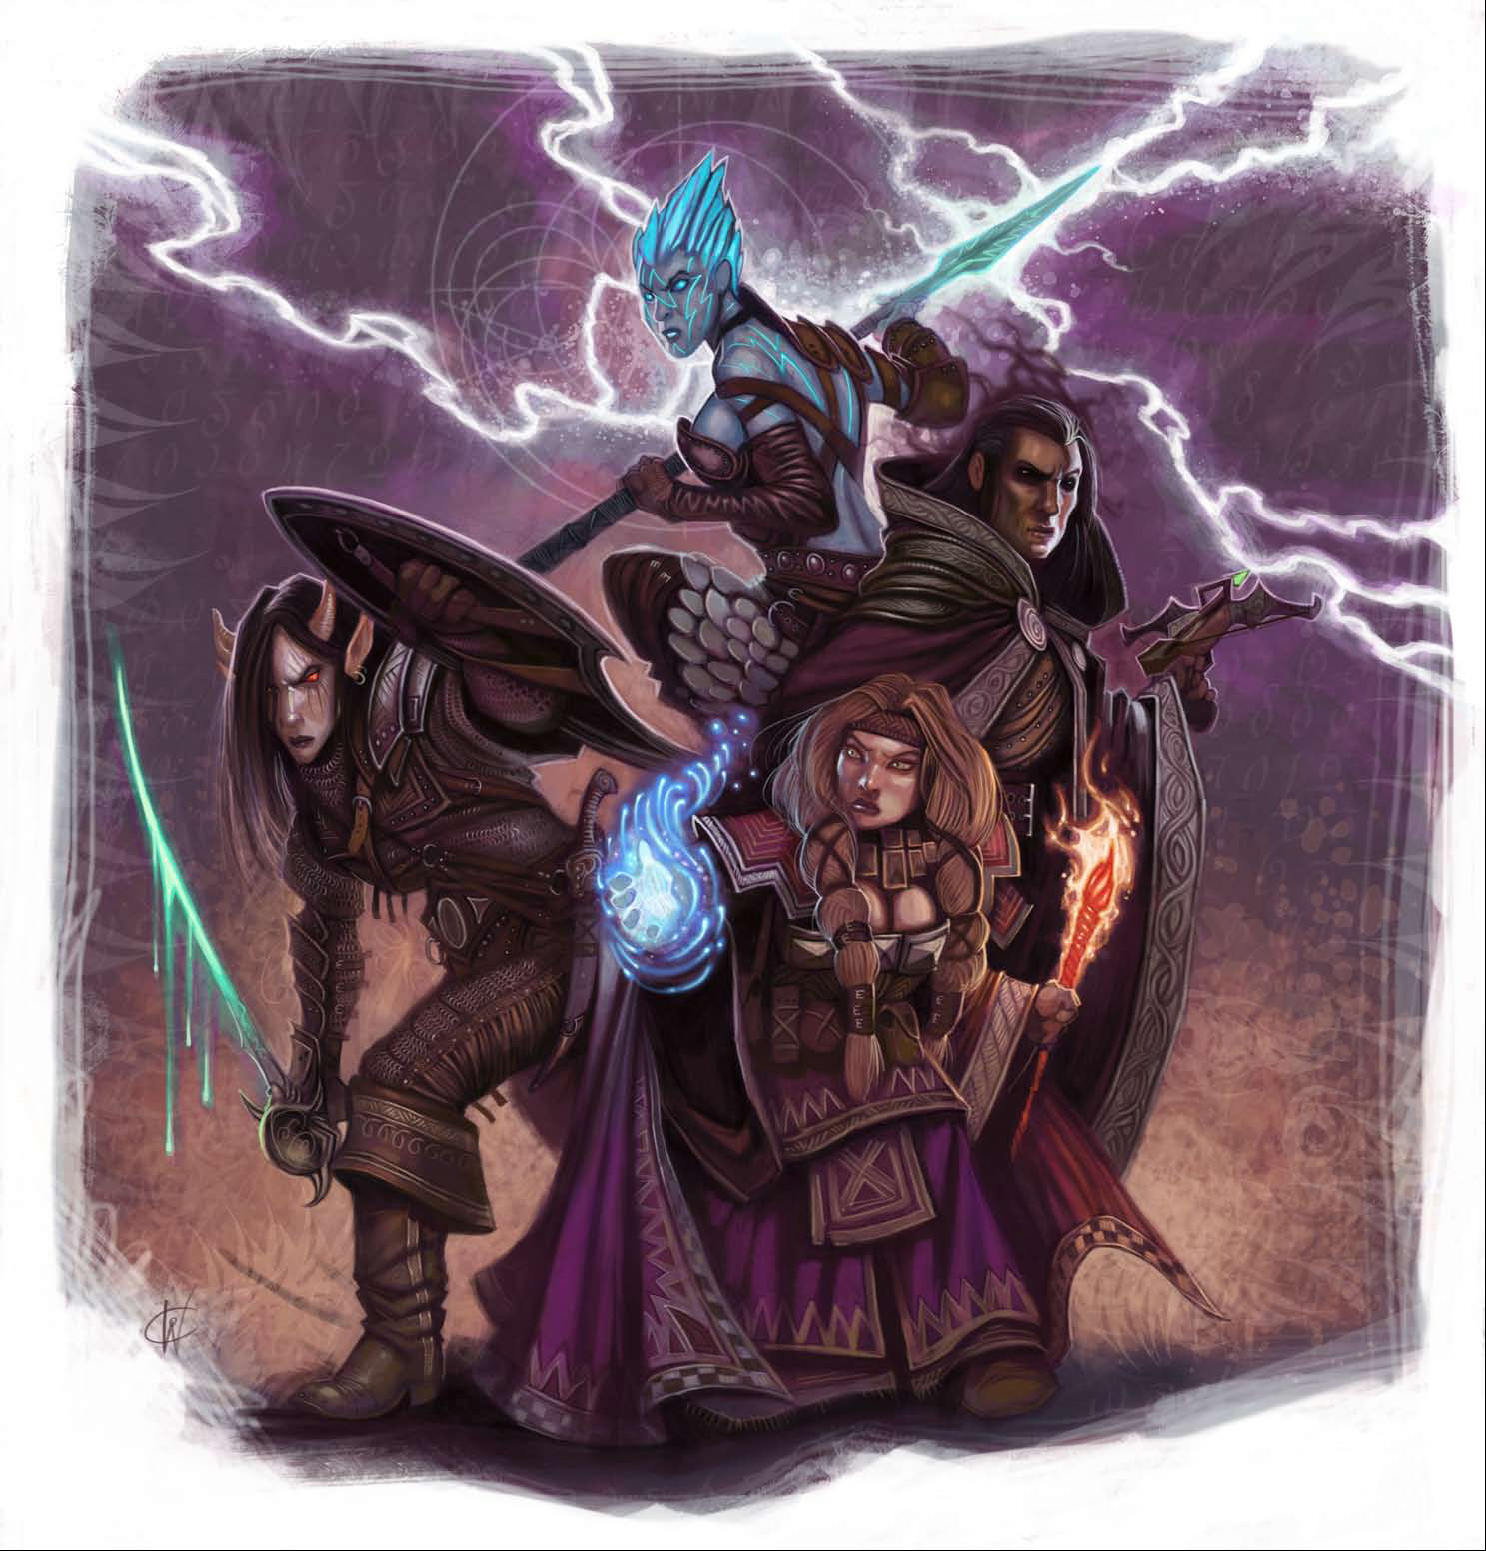 dwarf Tiefling, genasi, nana, party di avventurieri - by William O'Connor Dragon Magazine #372 (2009-02) © Wizards of the Coast & Hasbro